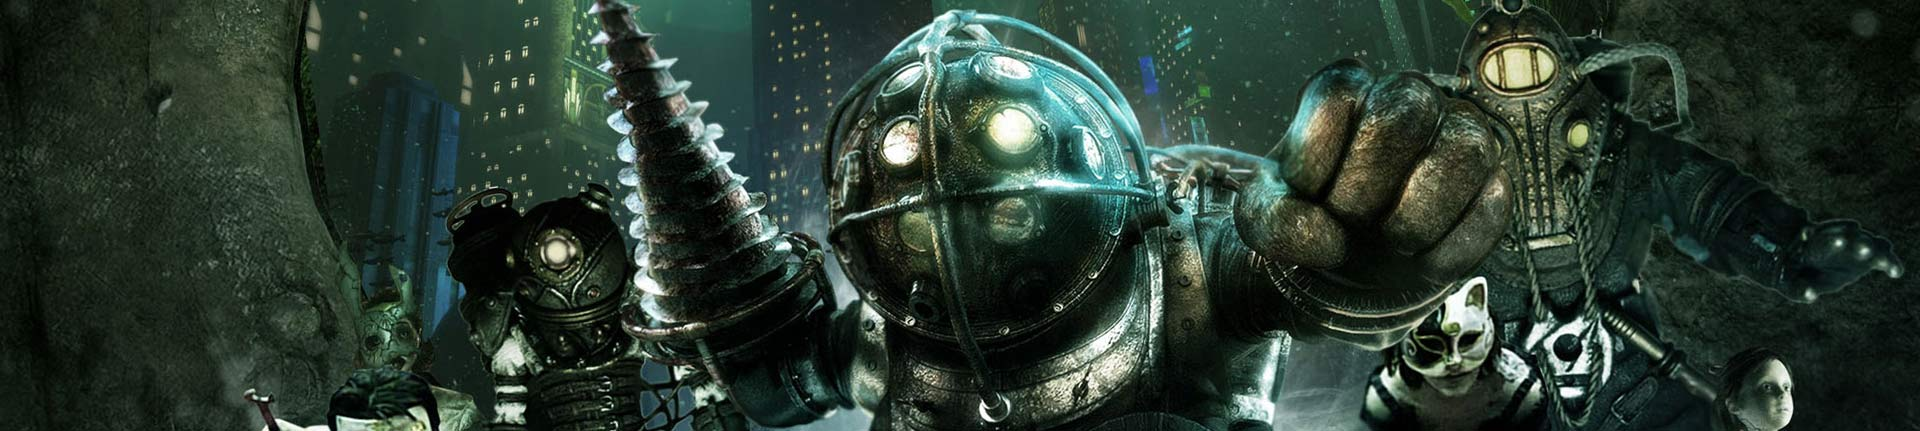 BioShock: The Collection – The best BioShock moments